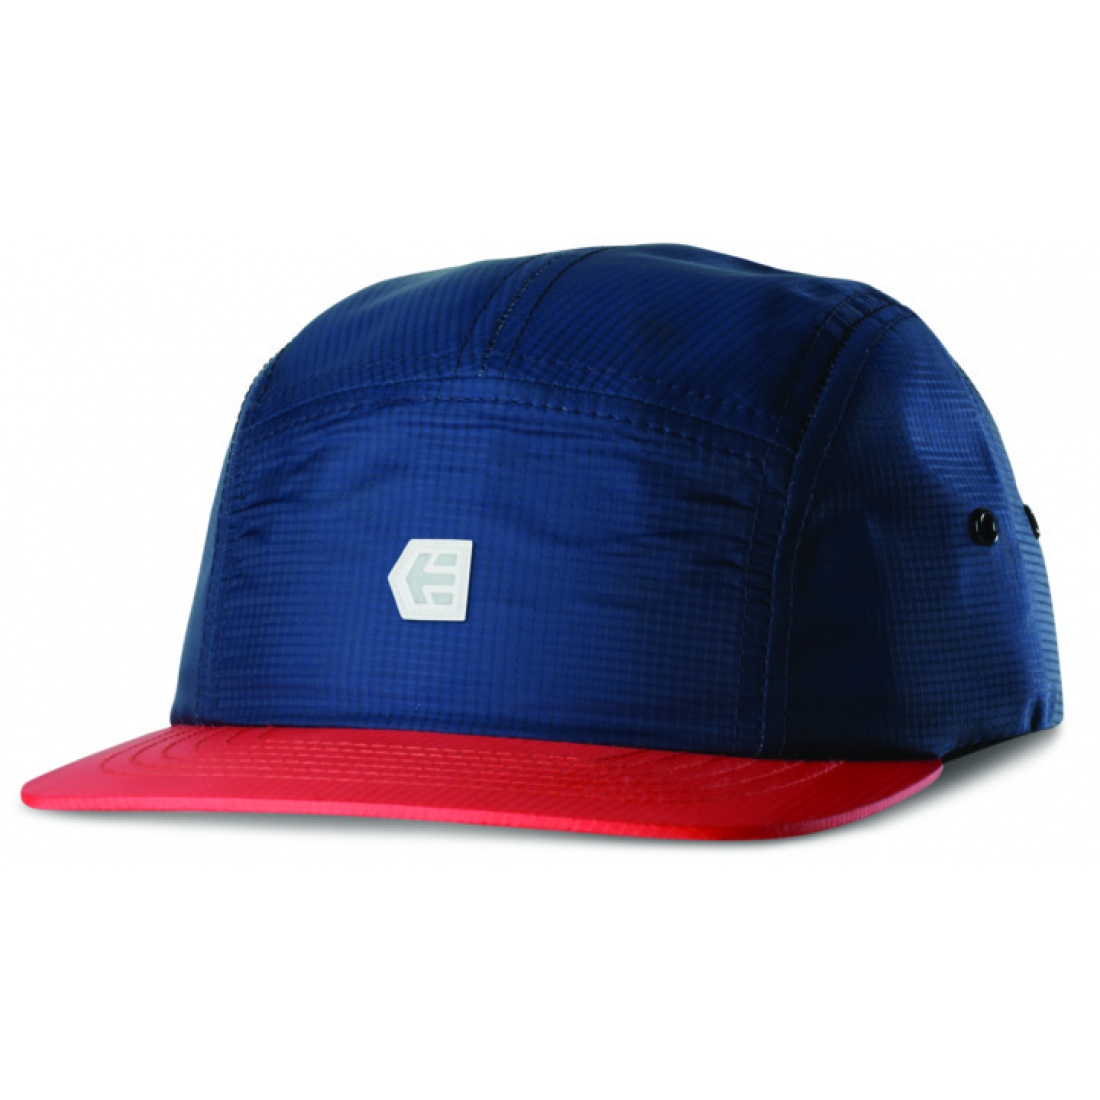 ETN-Liniar 5 Panel Dark Navy Hat